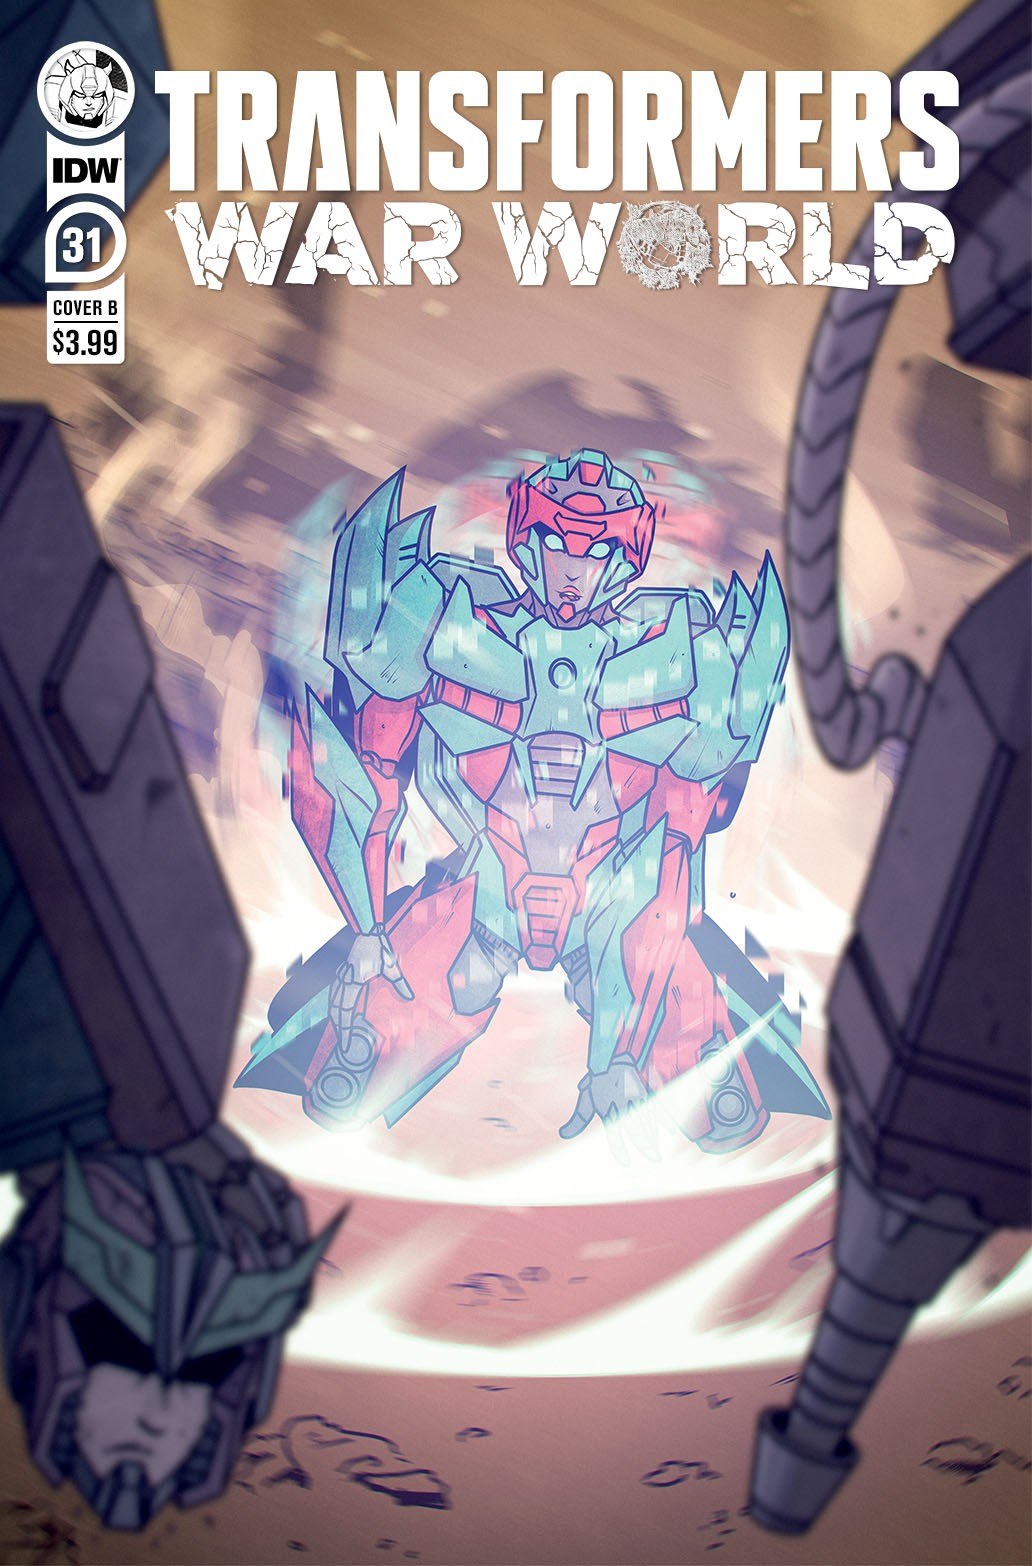 Transformers News: IDW Transformers Comics Solicitations for May 2021